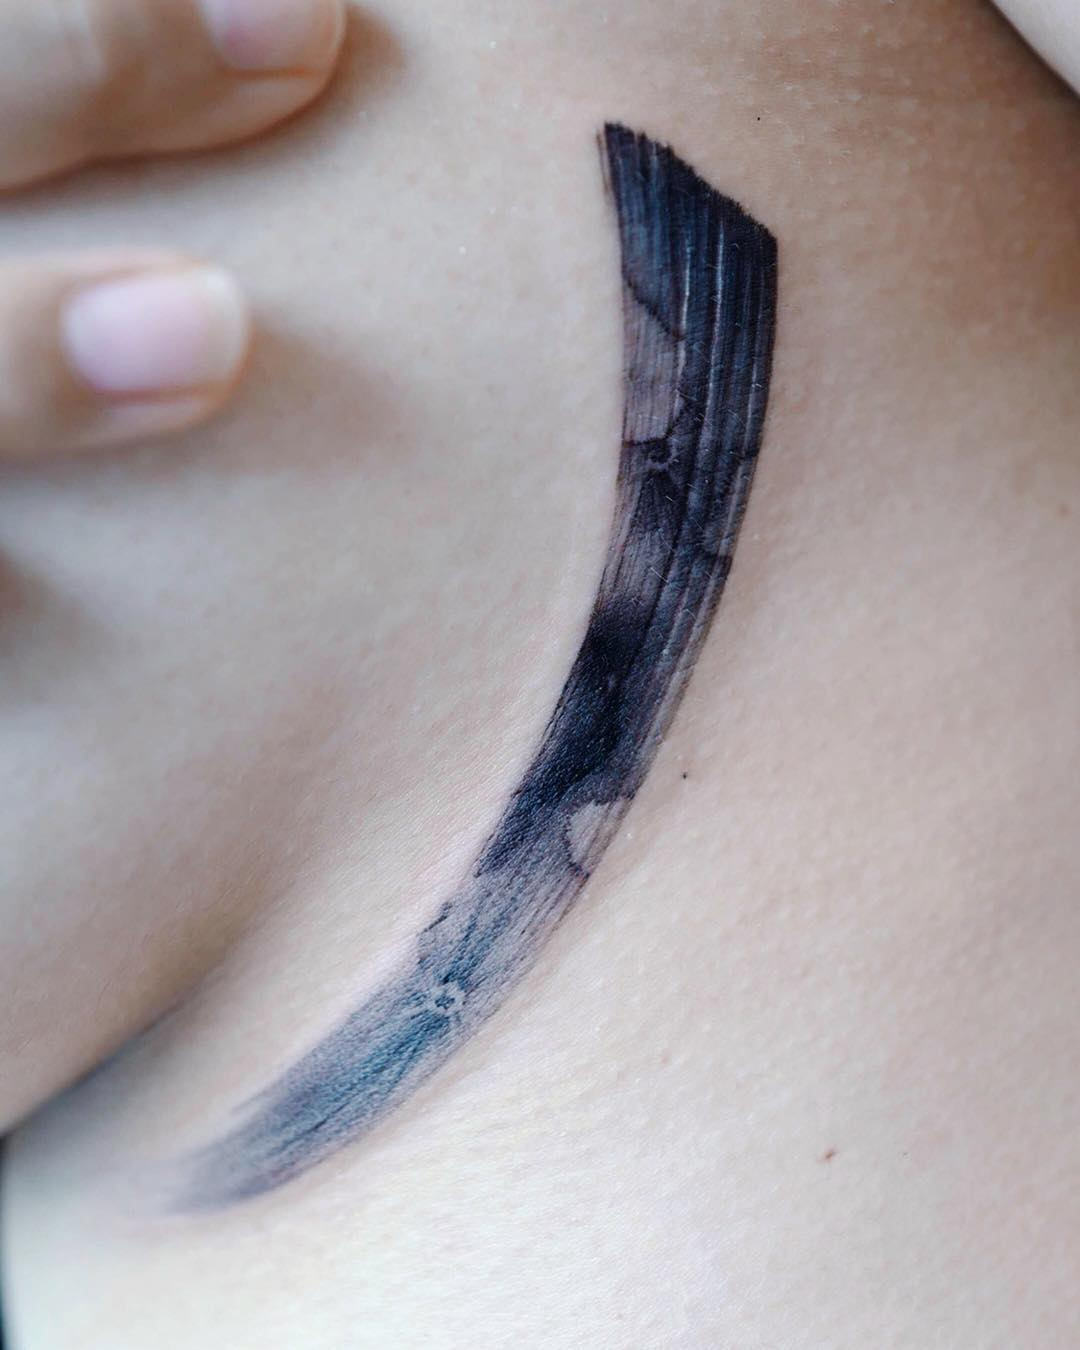 Brush stroke moon tattoo by Studio Bysol